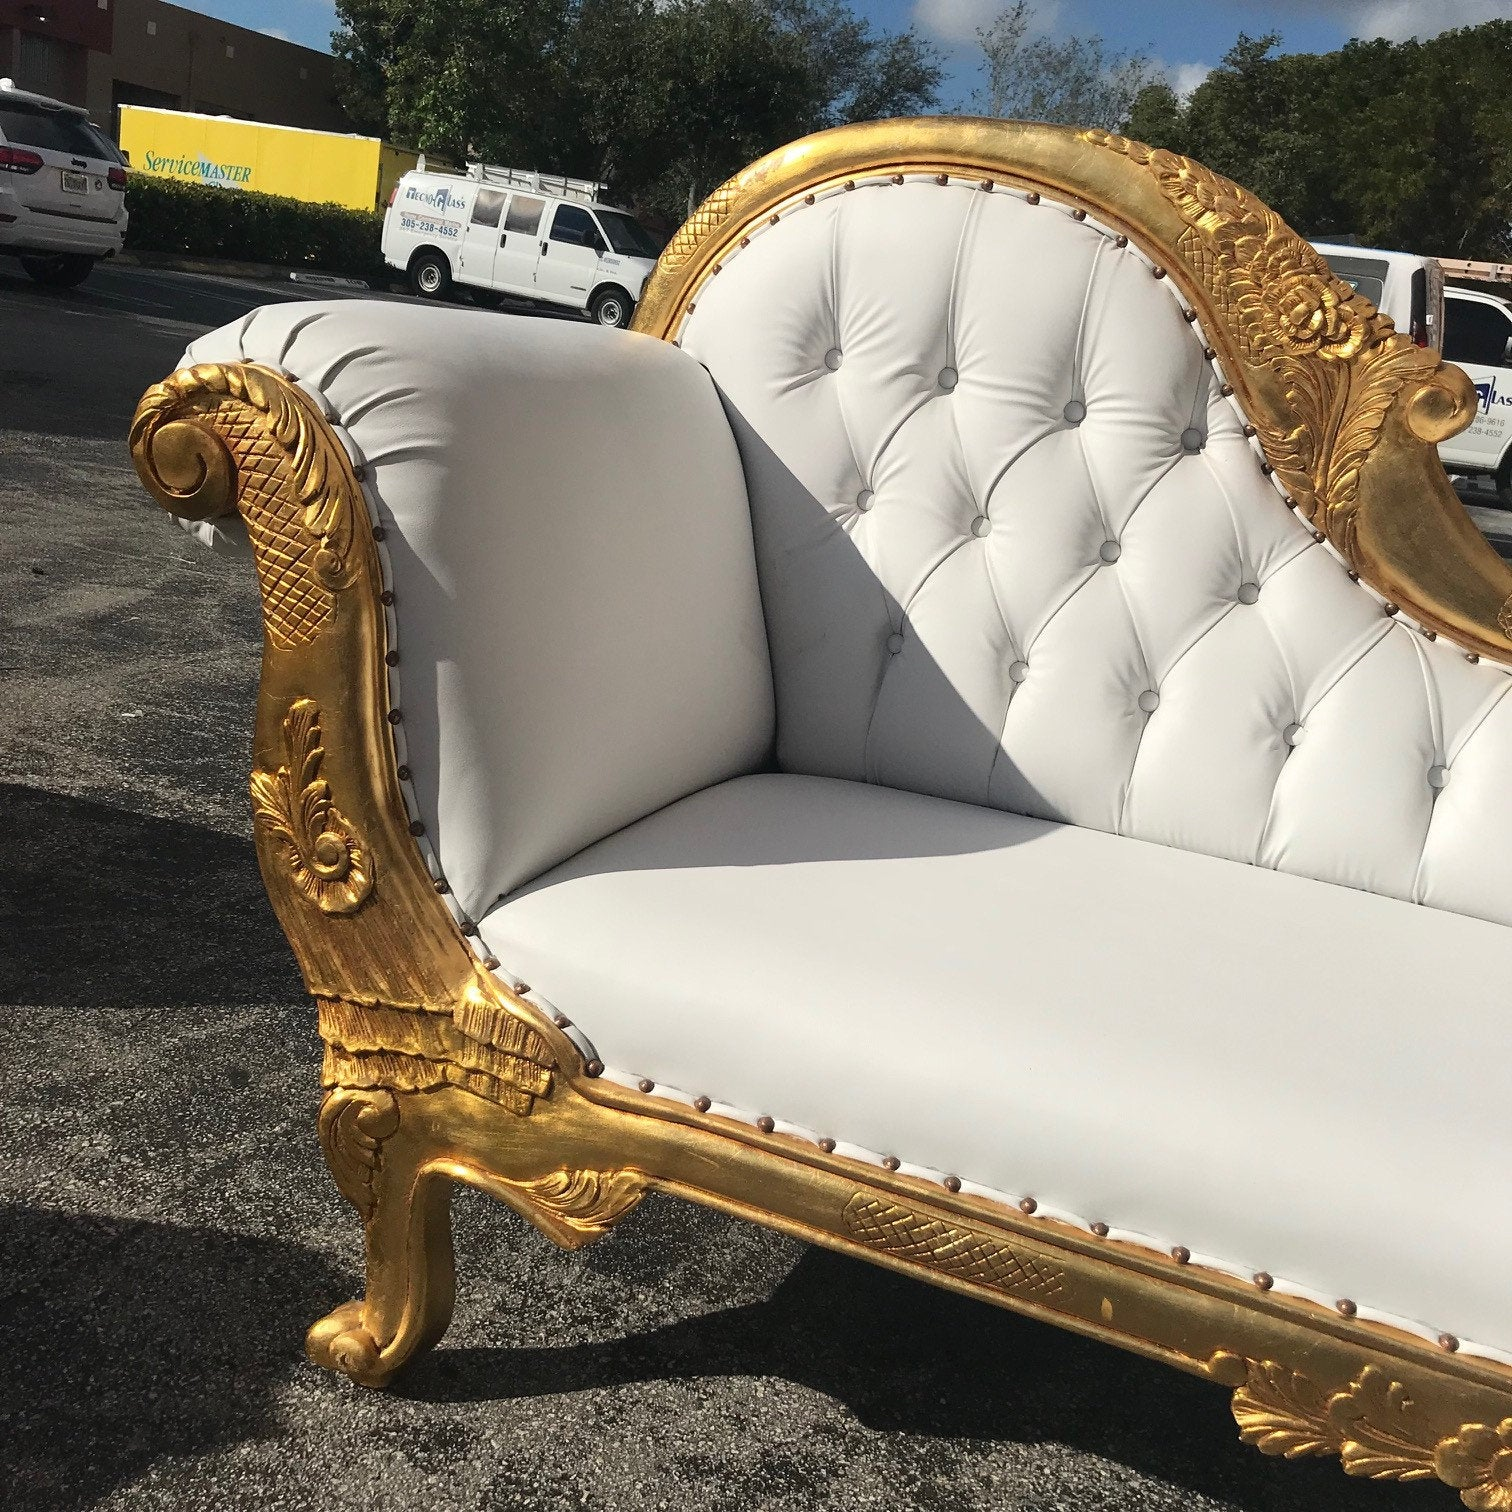 Awe Inspiring French Chaise Lounge French Furniture Gold With Tufted White Home Interior And Landscaping Dextoversignezvosmurscom